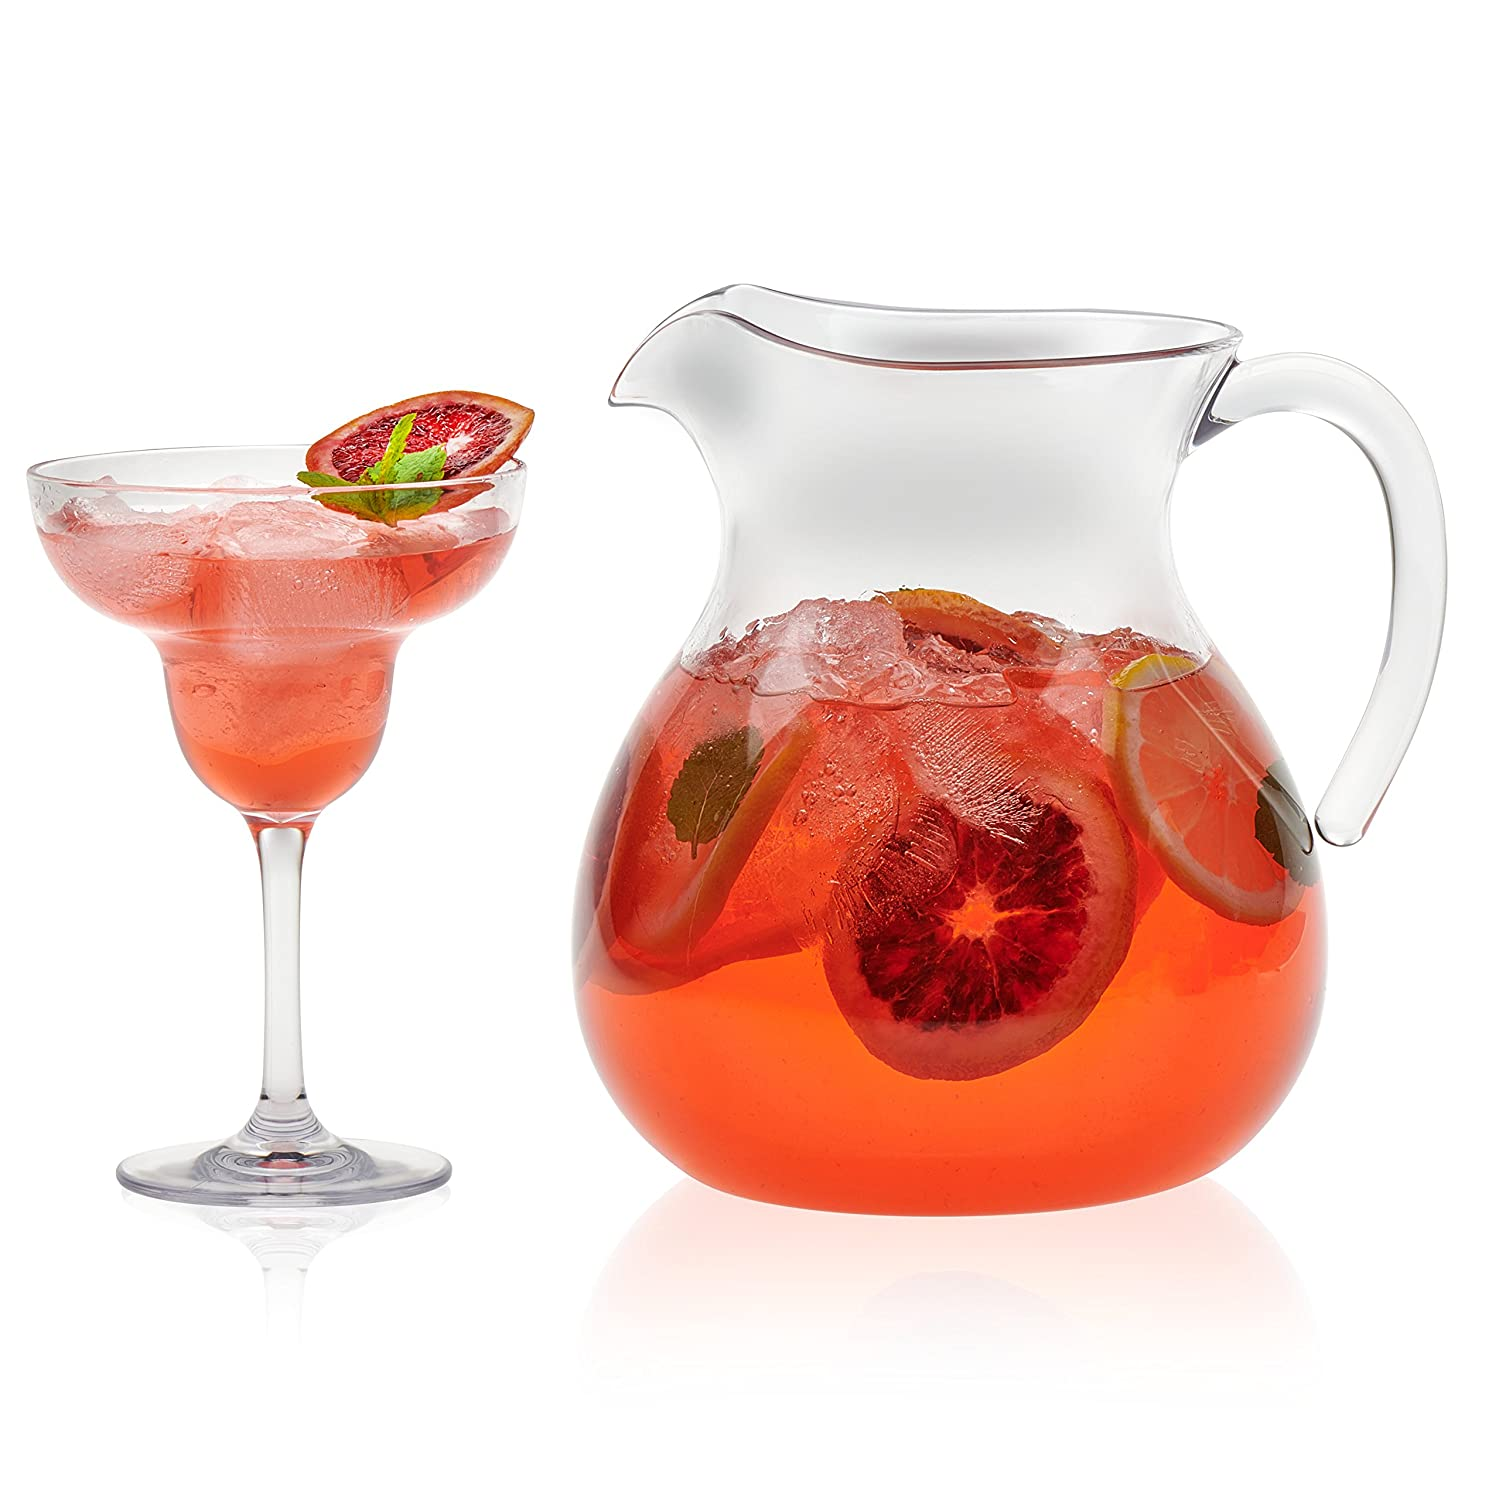 Libbey Indoors Out 7-piece Break-Resistant Margarita Entertaining Set Distributed by Libbey